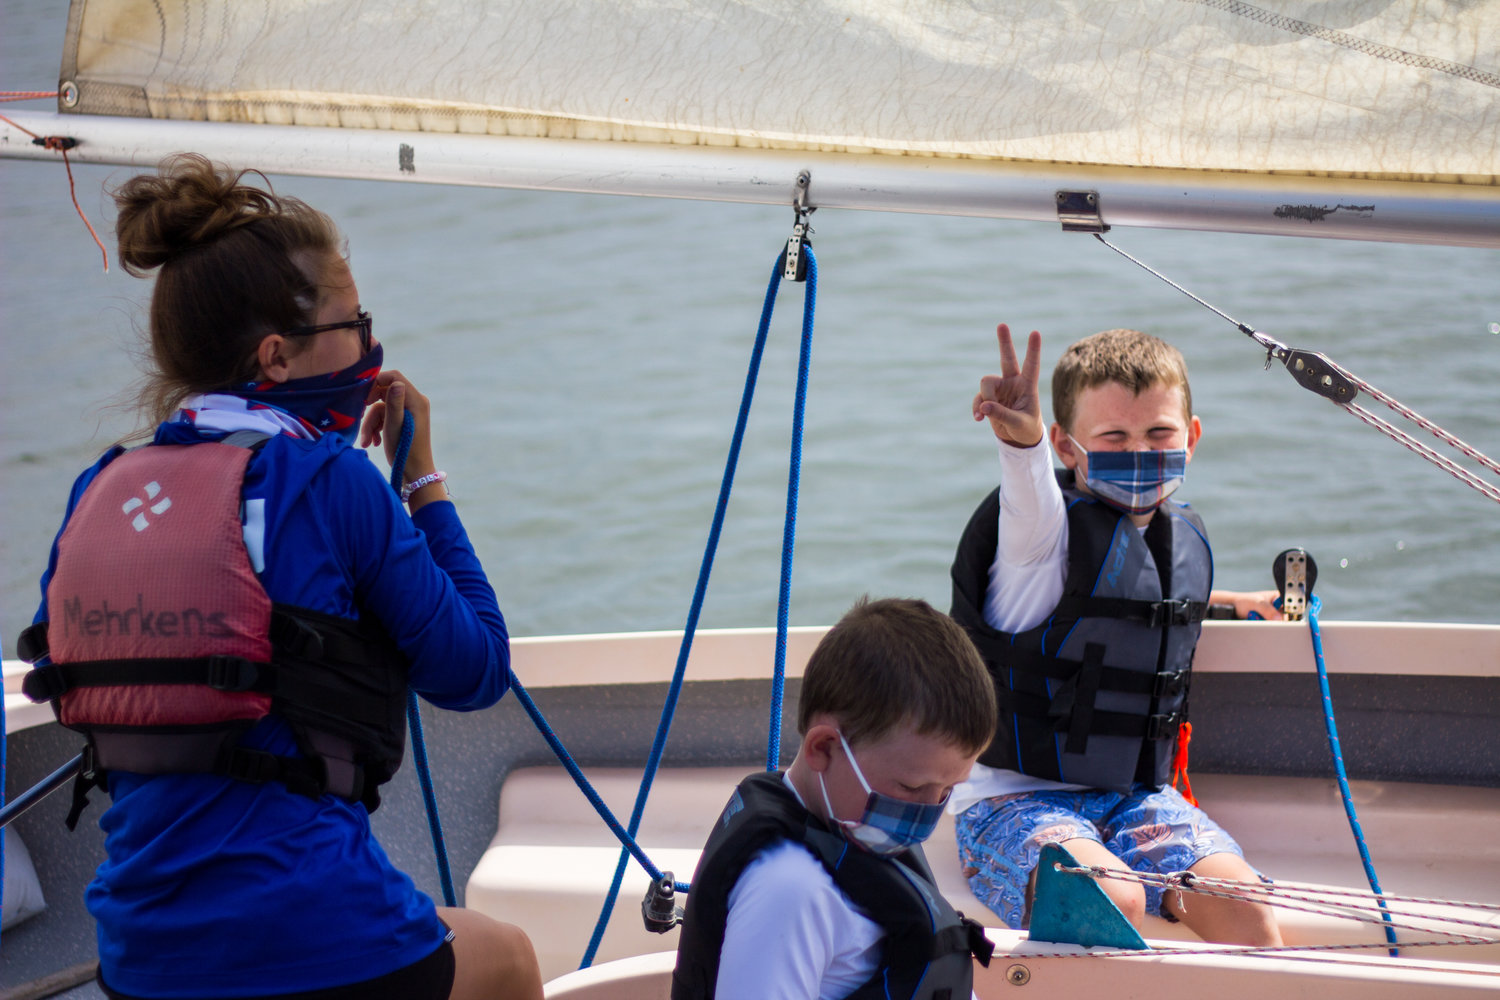 Instructors and sailors take to the seas in masks, ready for lessons this summer.